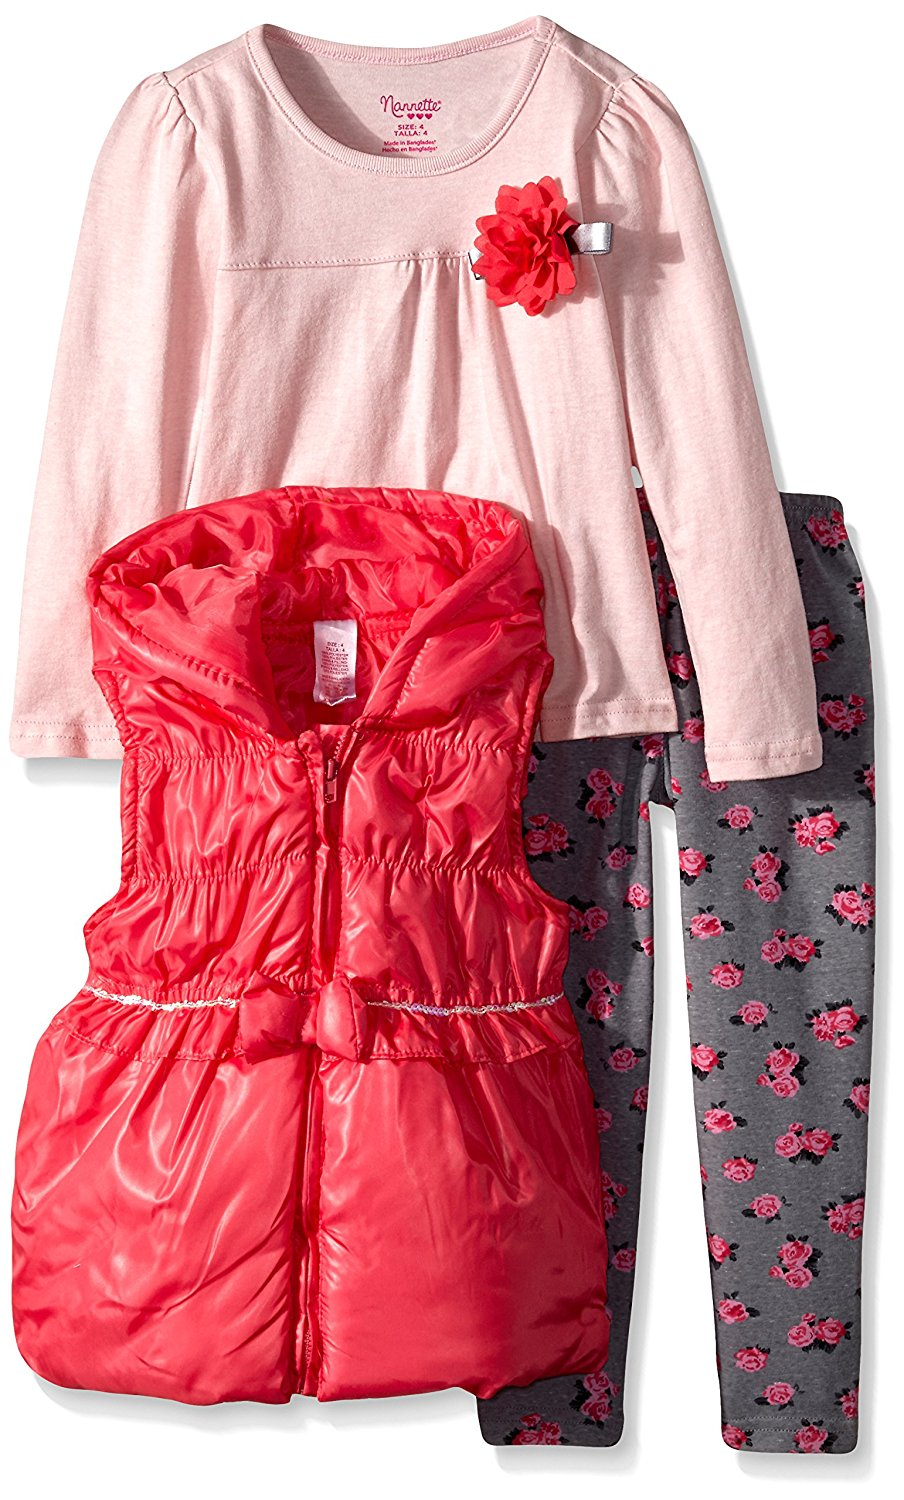 Nannette Girls 2 Piece Pleated Chiffon Top and Printed Legging Set